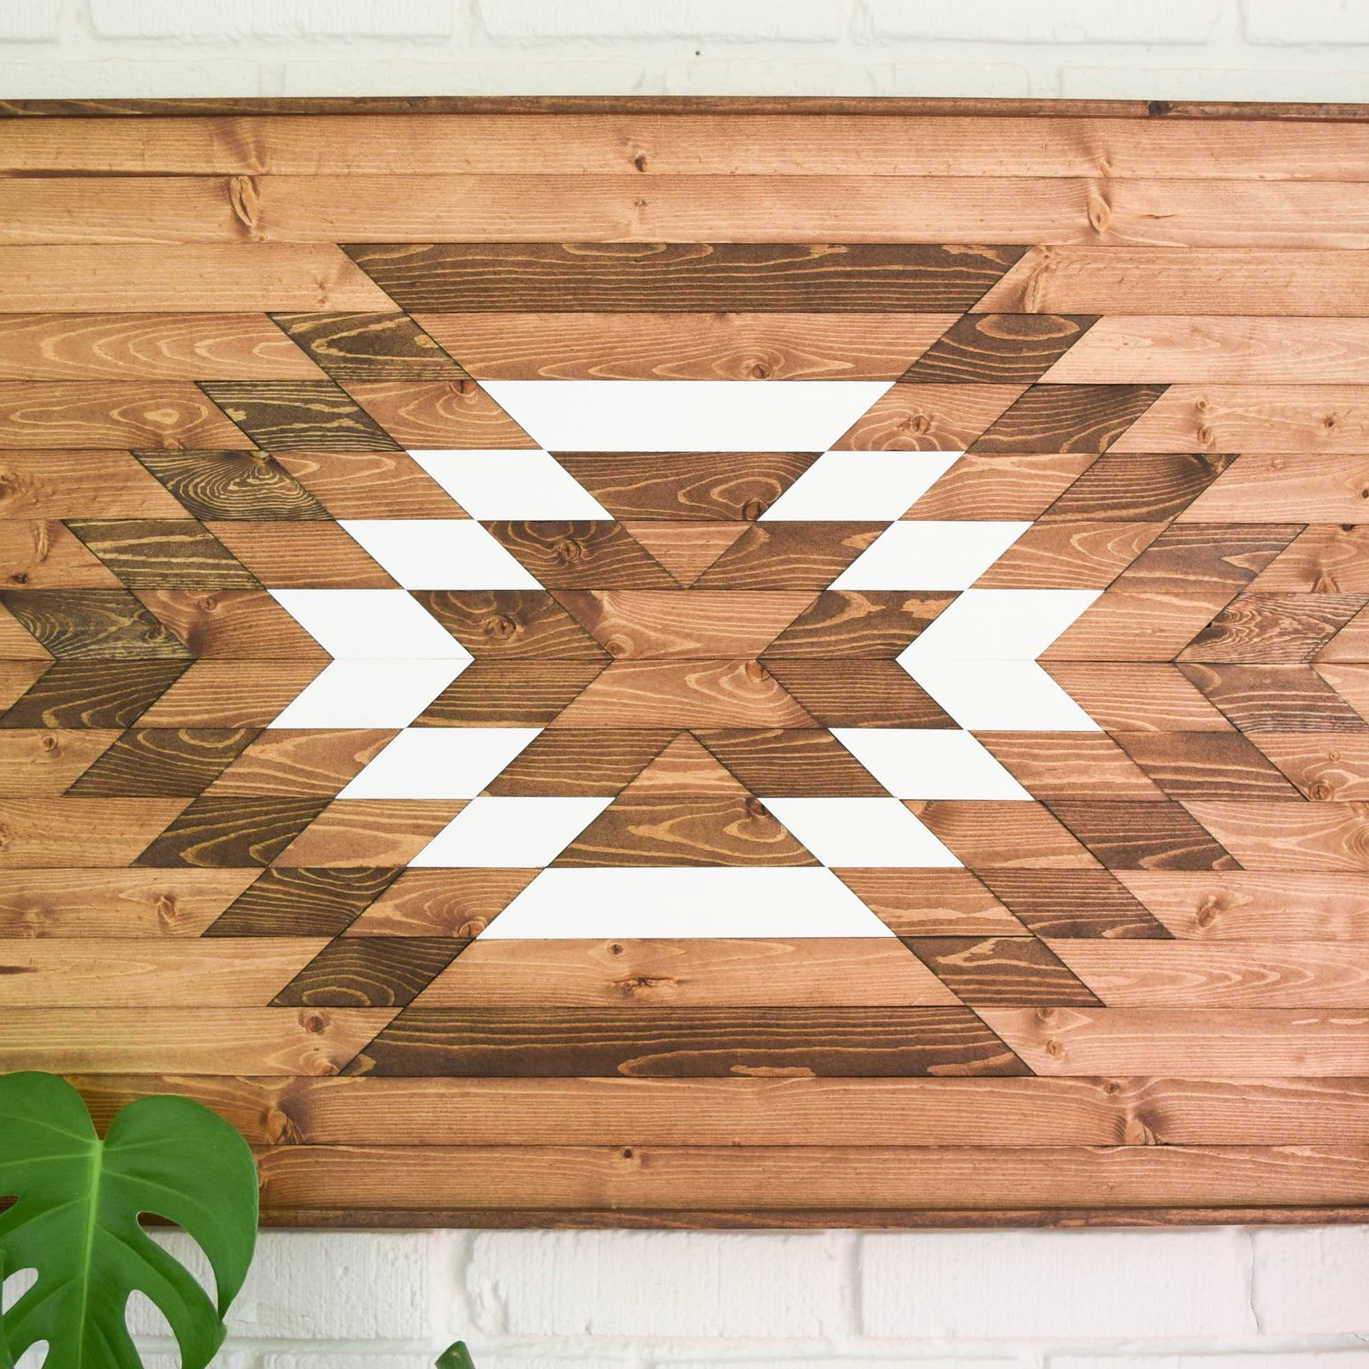 Taos Wooden Wall Art   Upper Earth ...